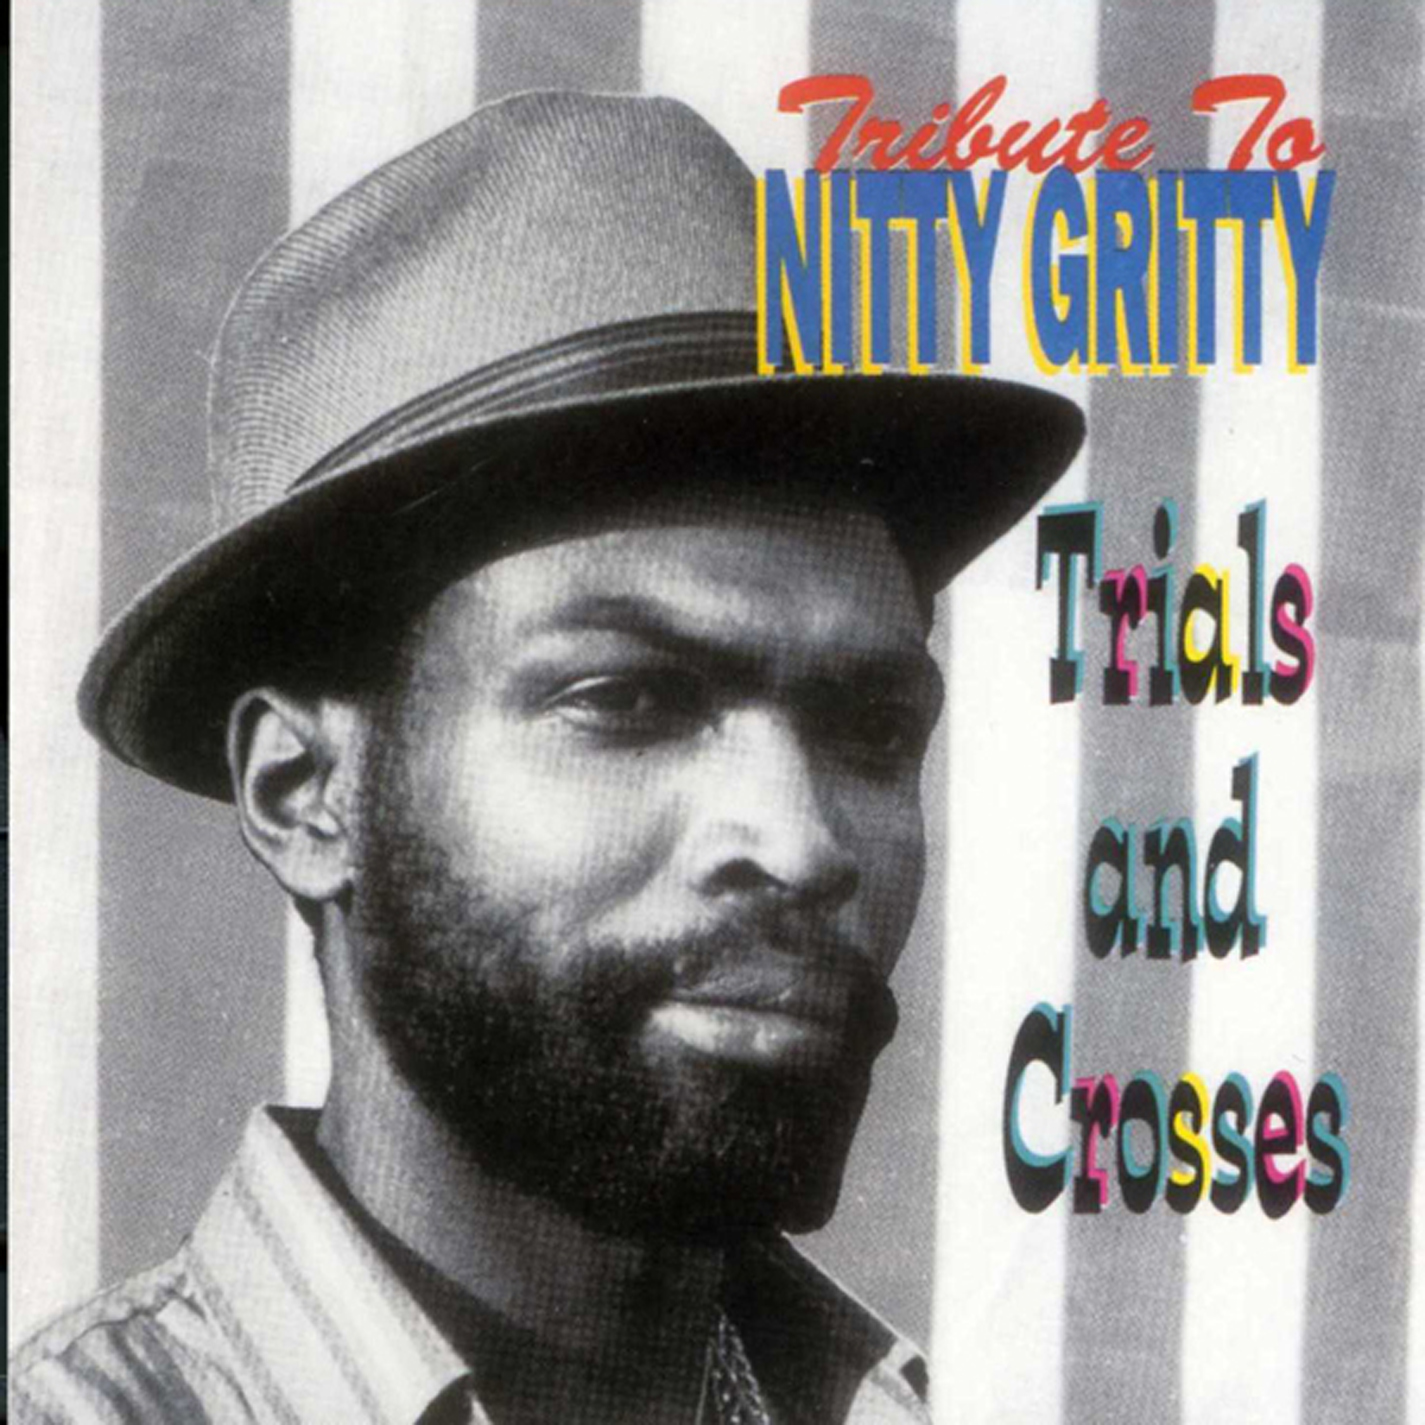 Nitty Gritty – Tribute To Nitty Gritty: Trial and Crosses